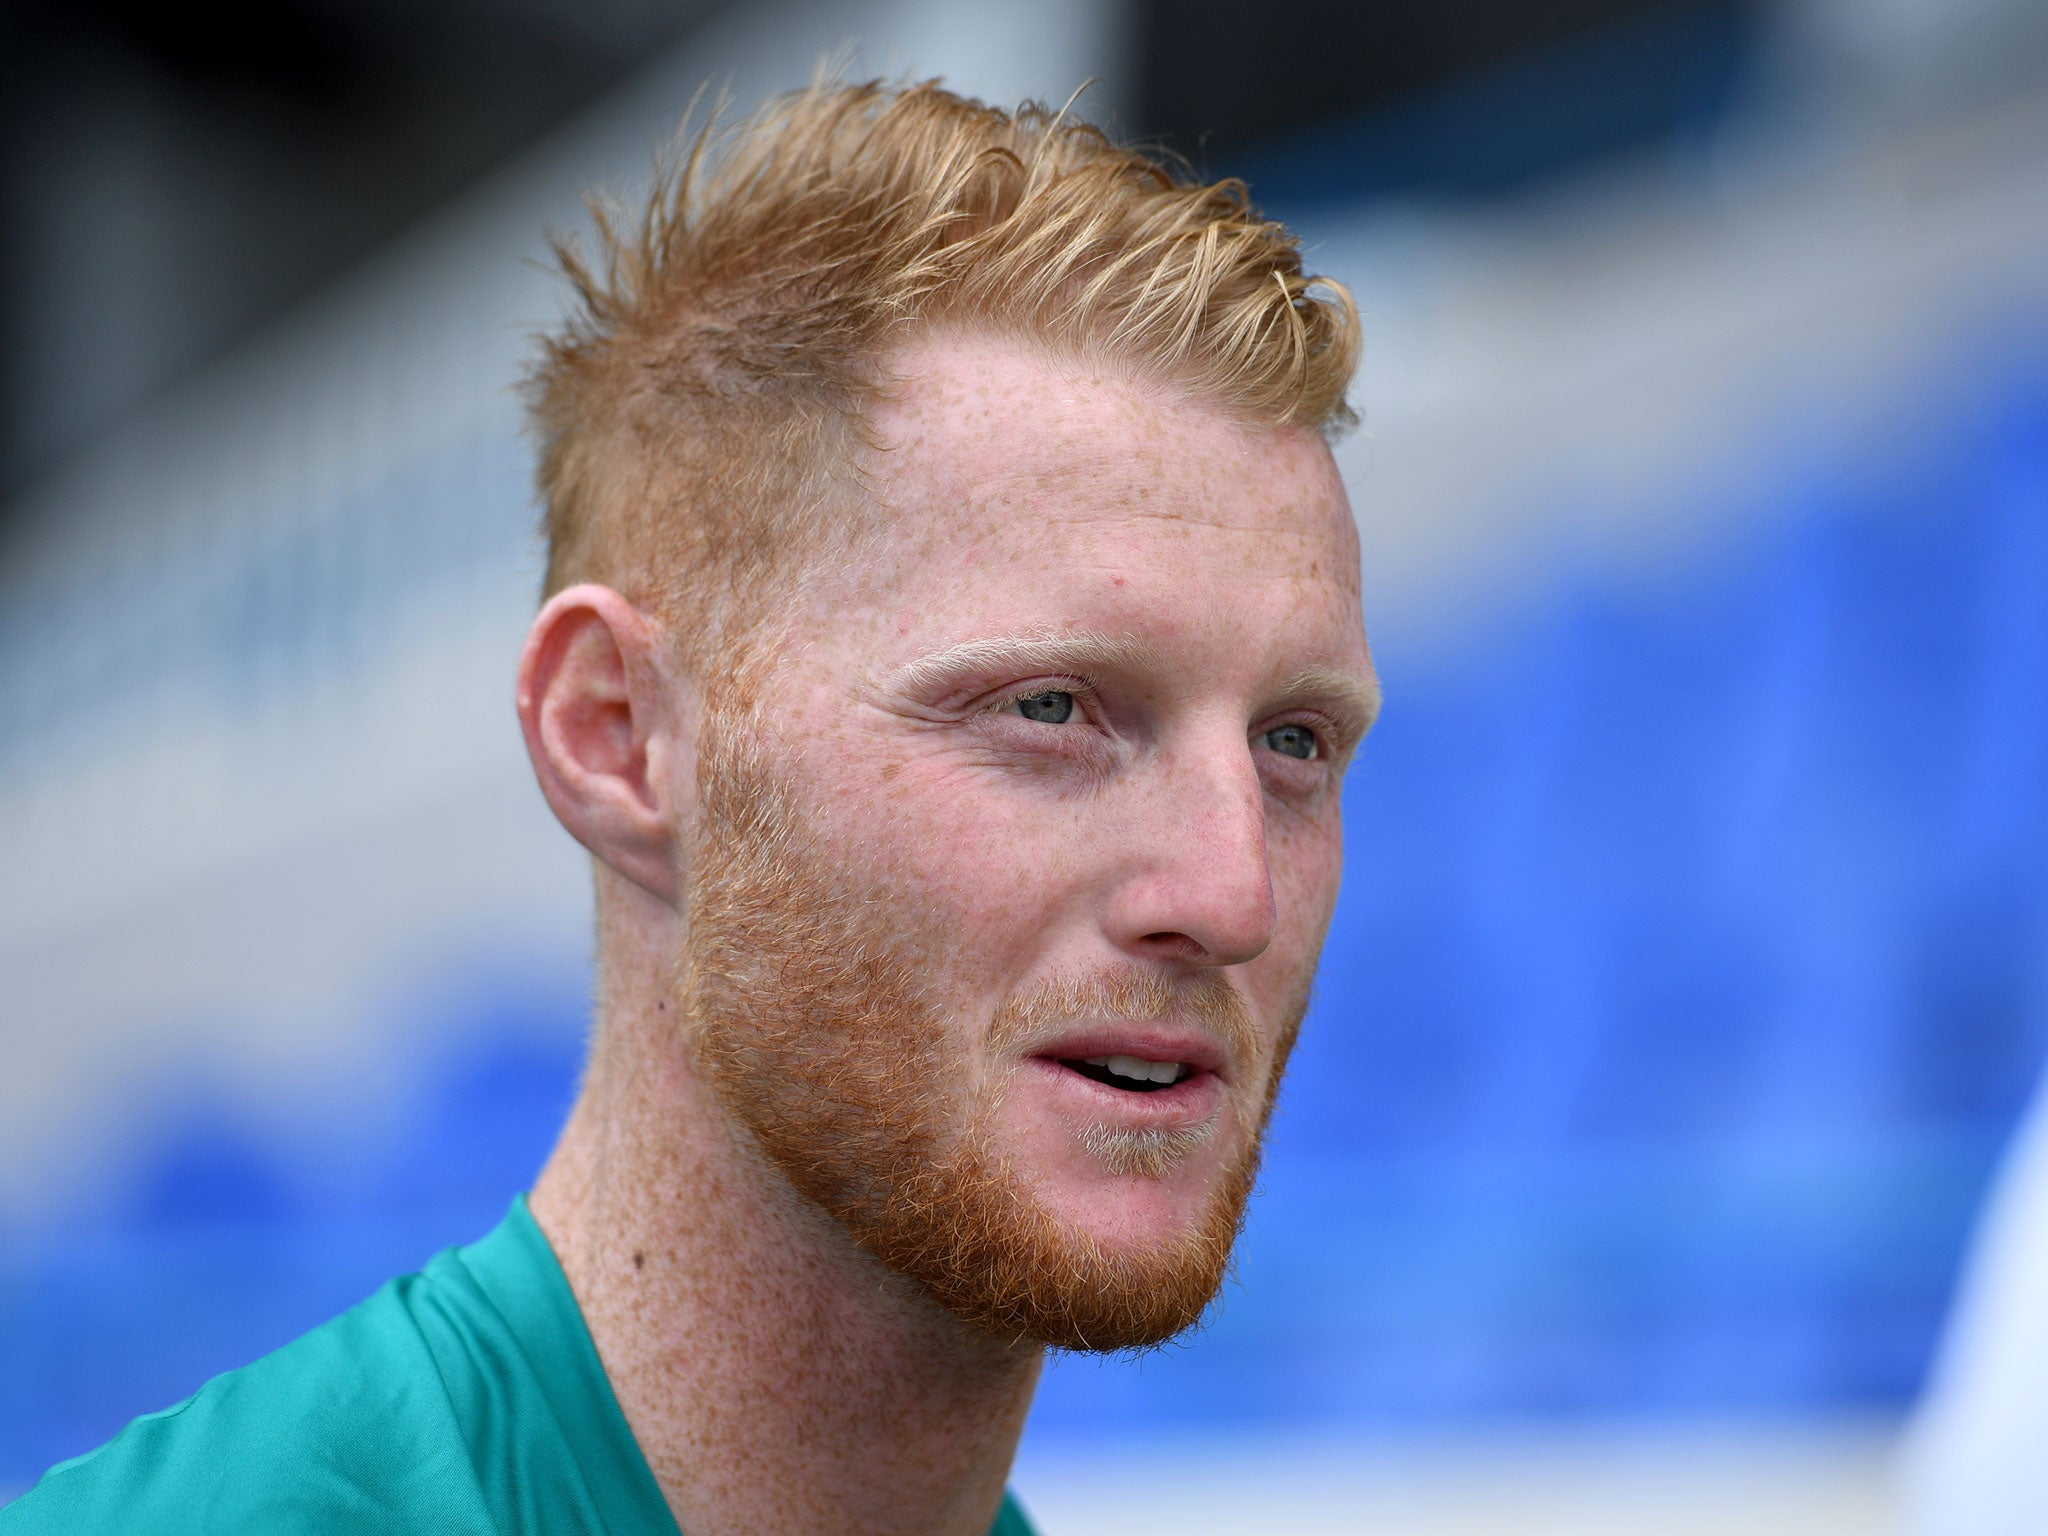 Ben Stokes spoke to the Independent about his recent transfer fee and more